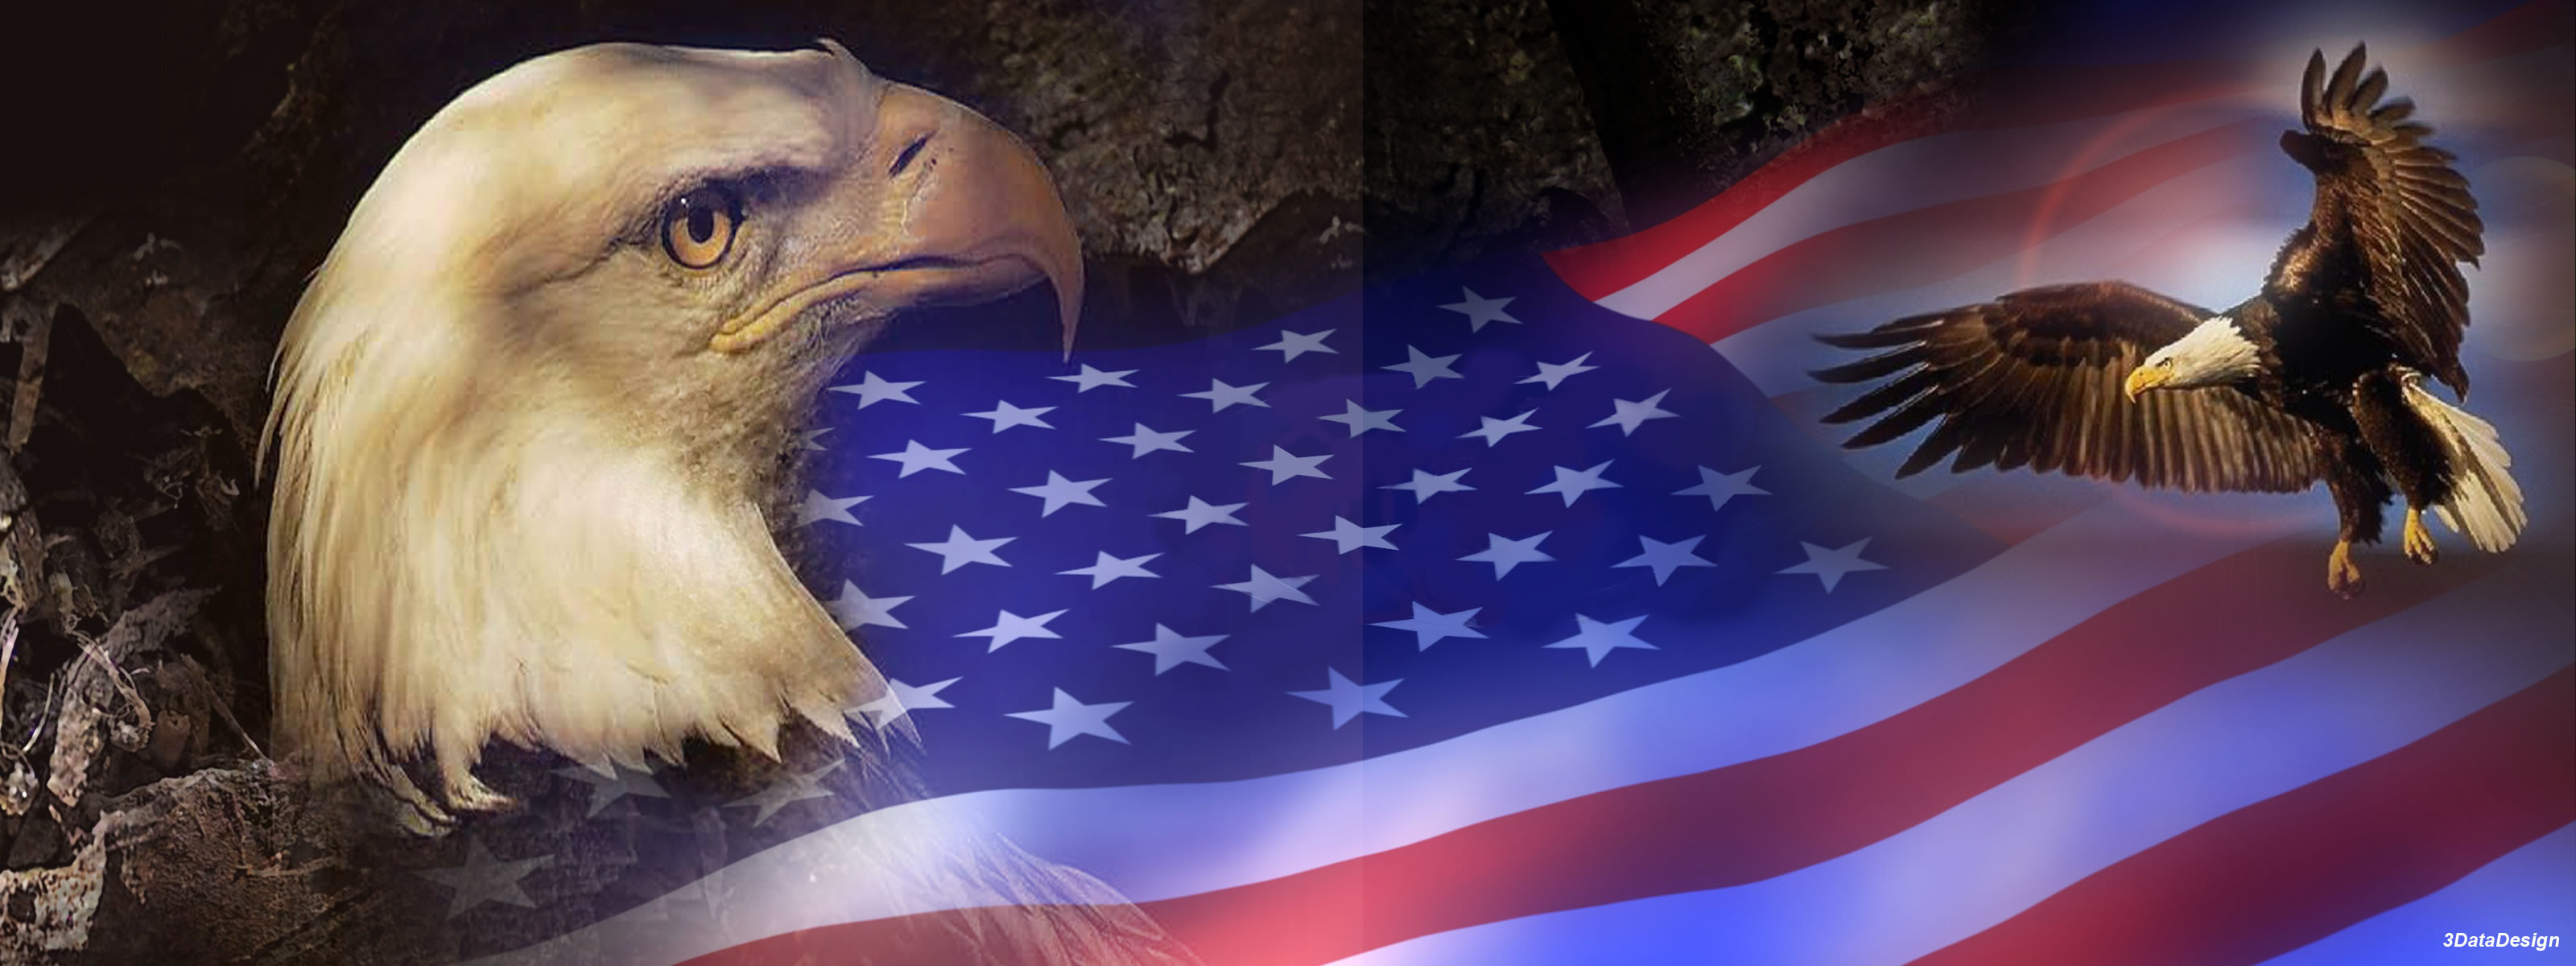 Patriotic Bald Eagle Wallpaper 66 Images